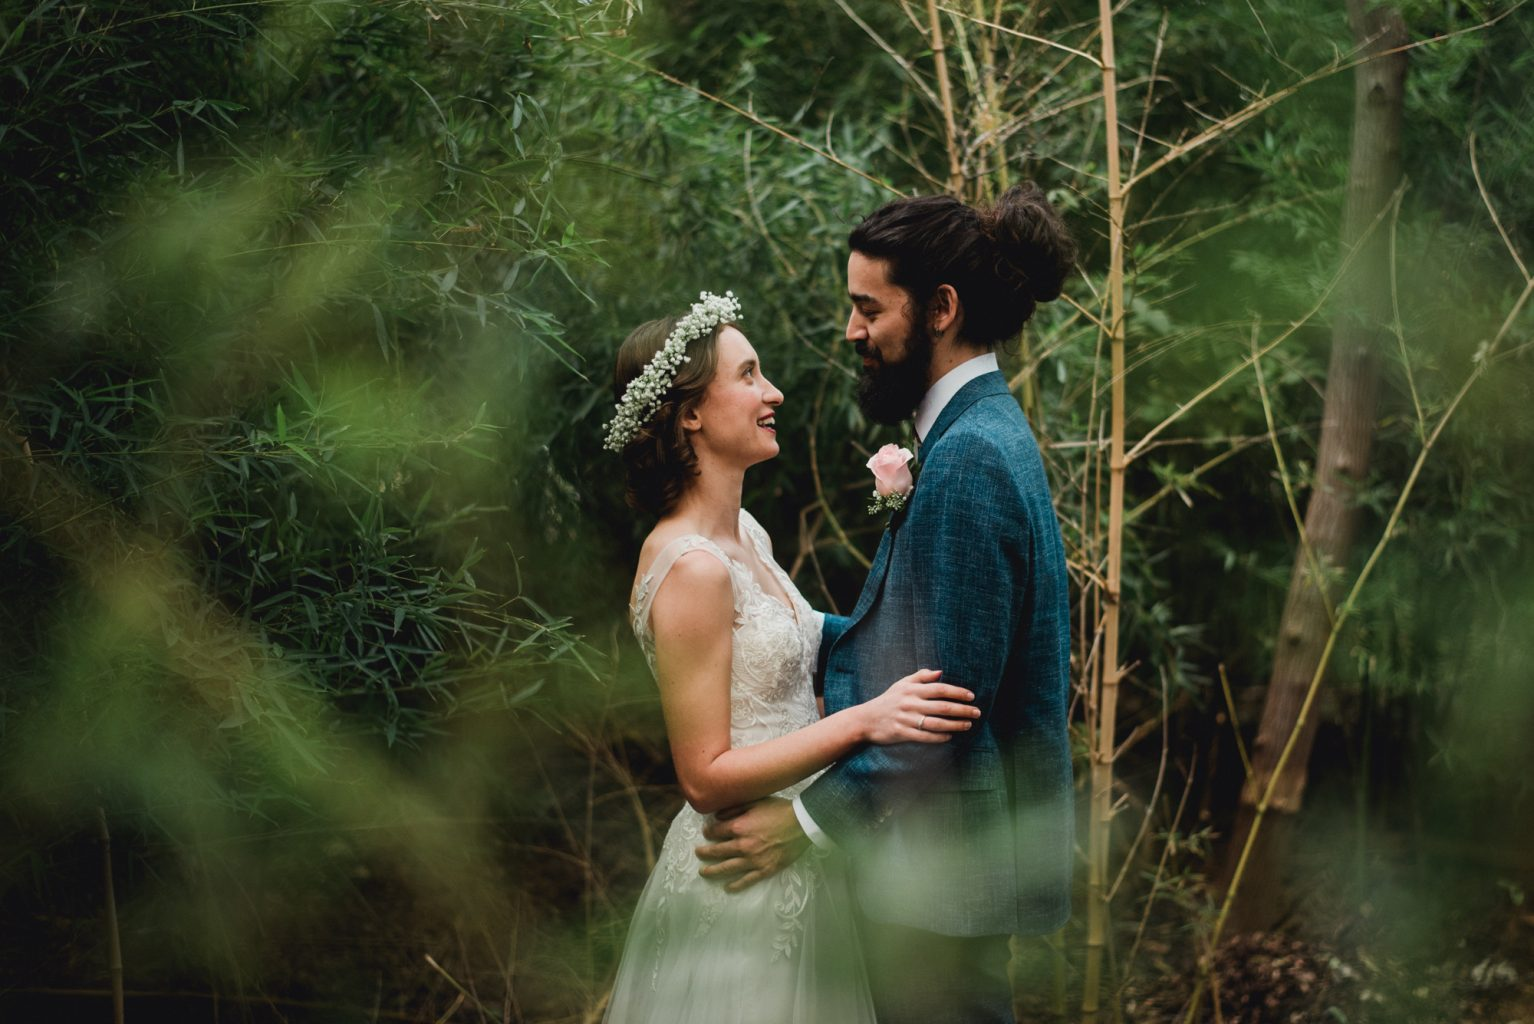 bride with baby's breath crown and groom with long hair cuddle close on their wedding day in austin texas